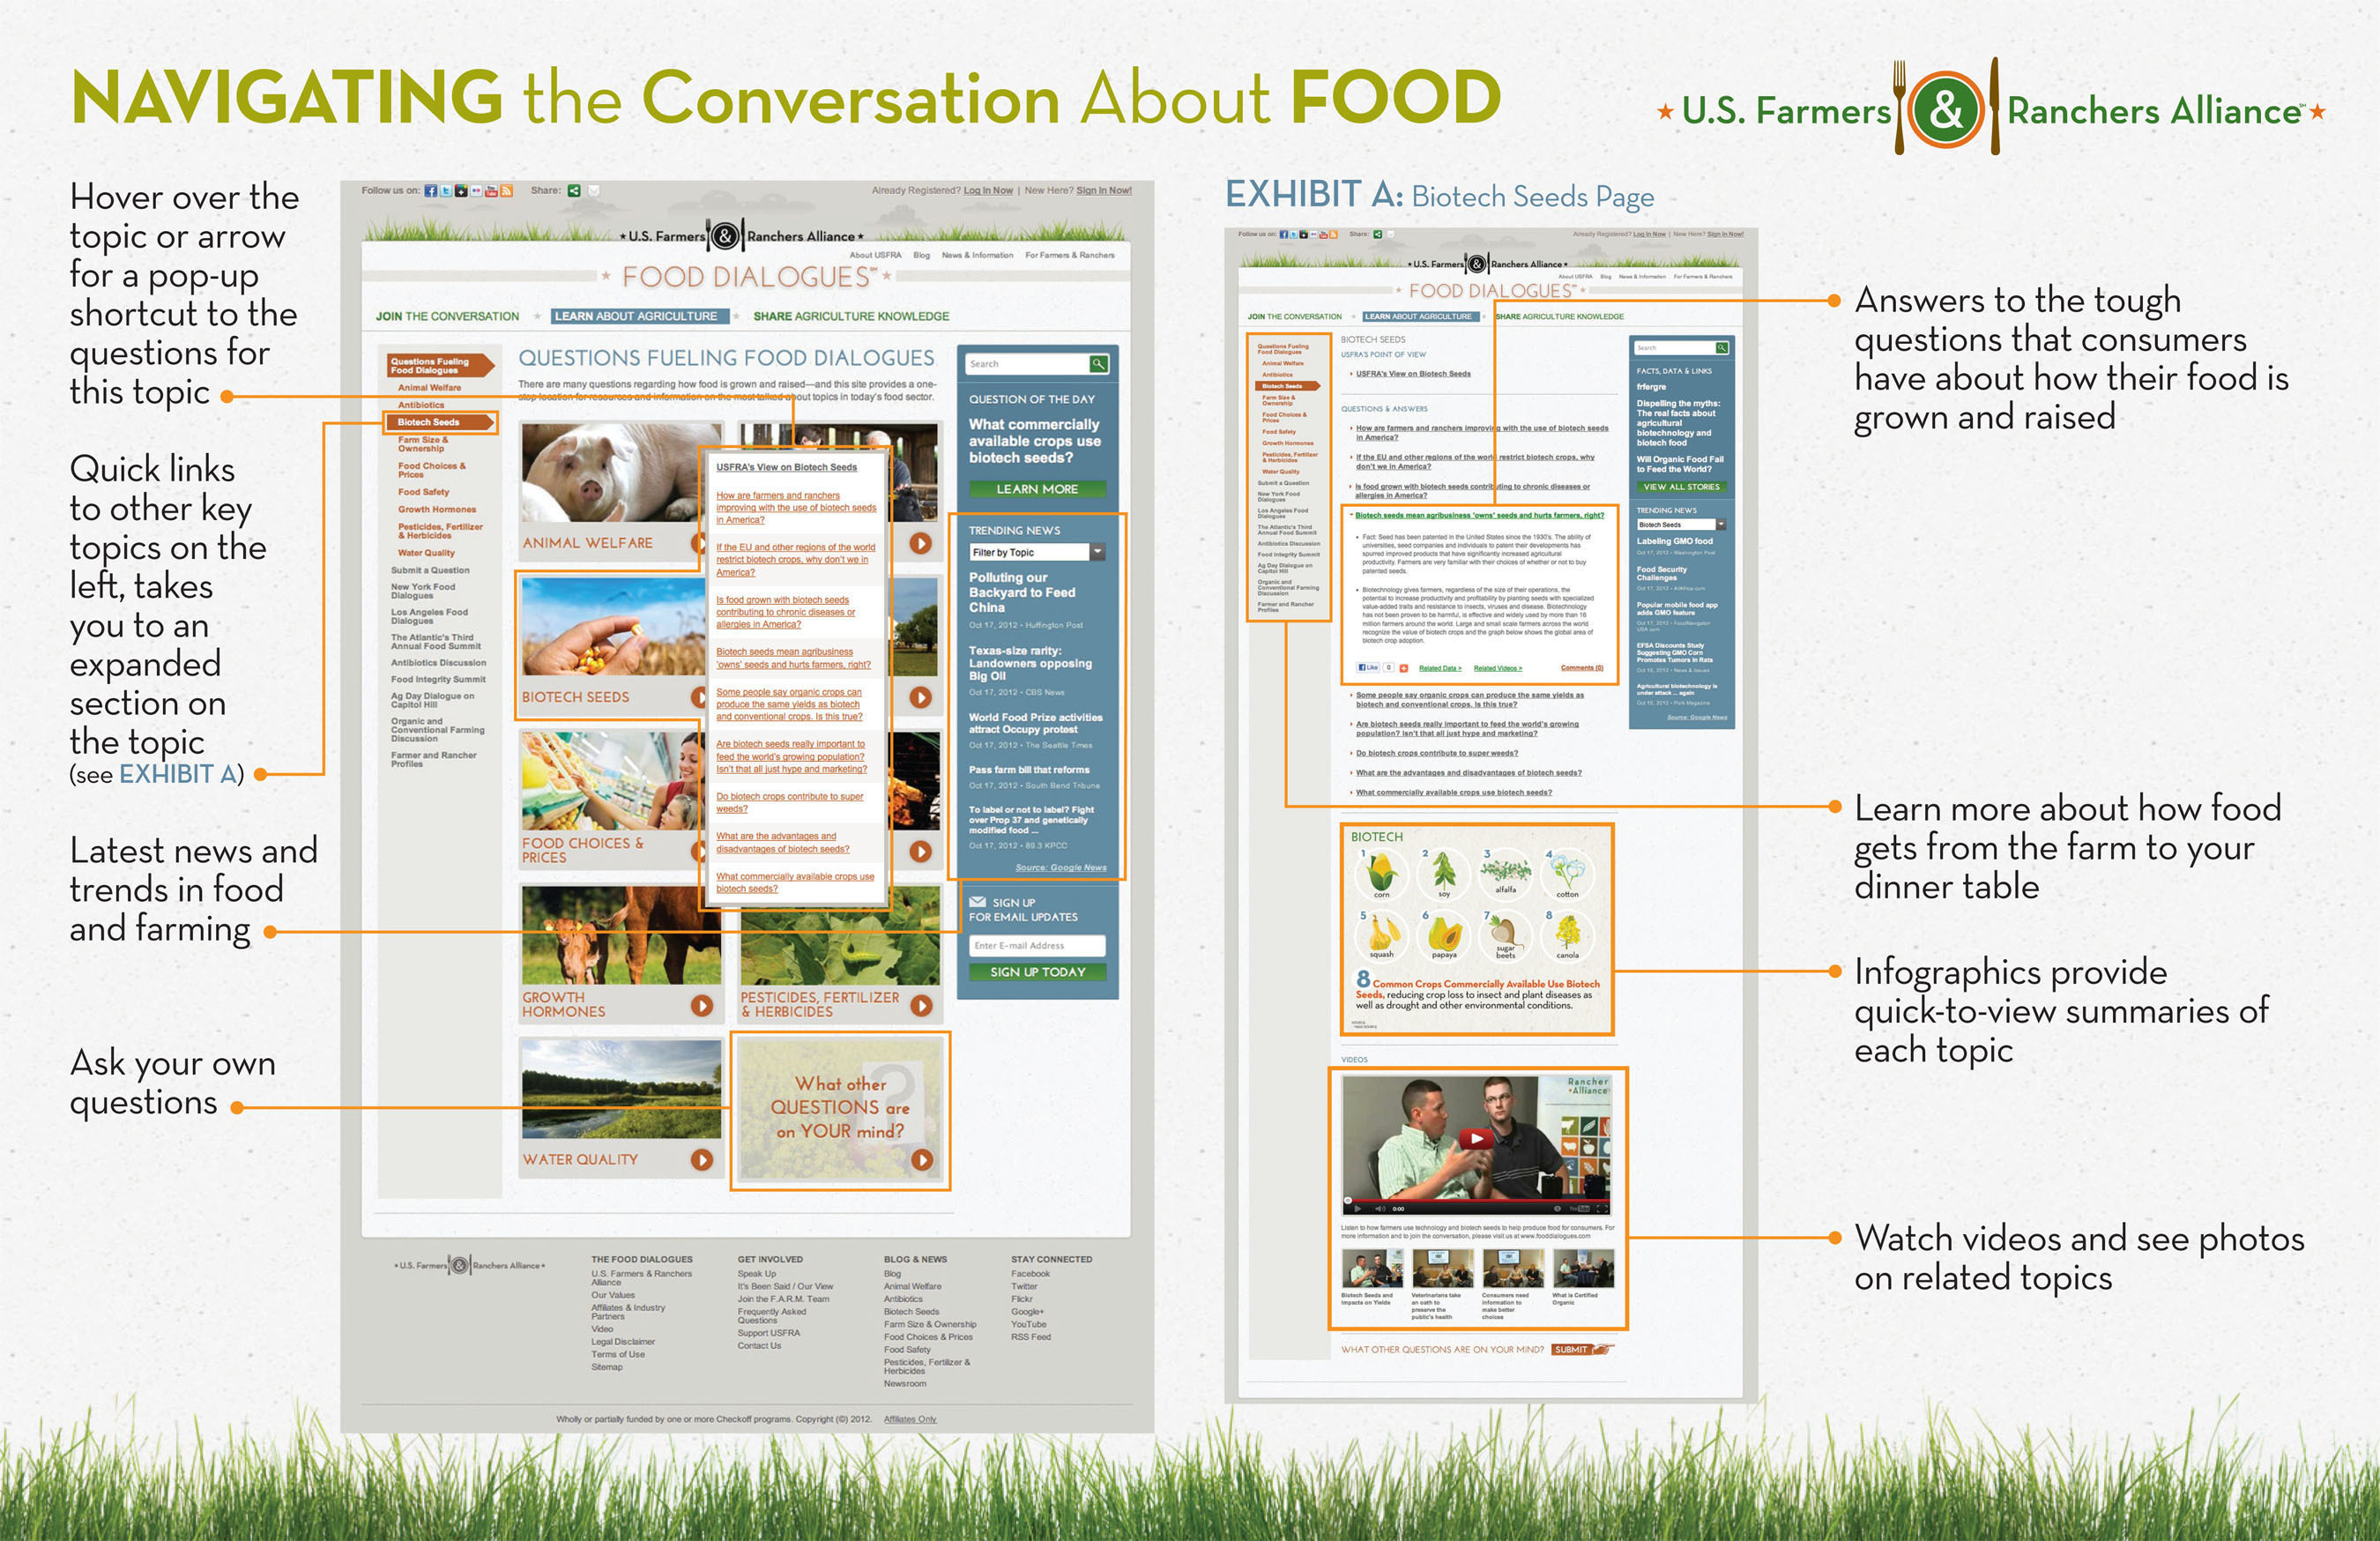 New Online Tool Addresses Consumer Questions On Food Production